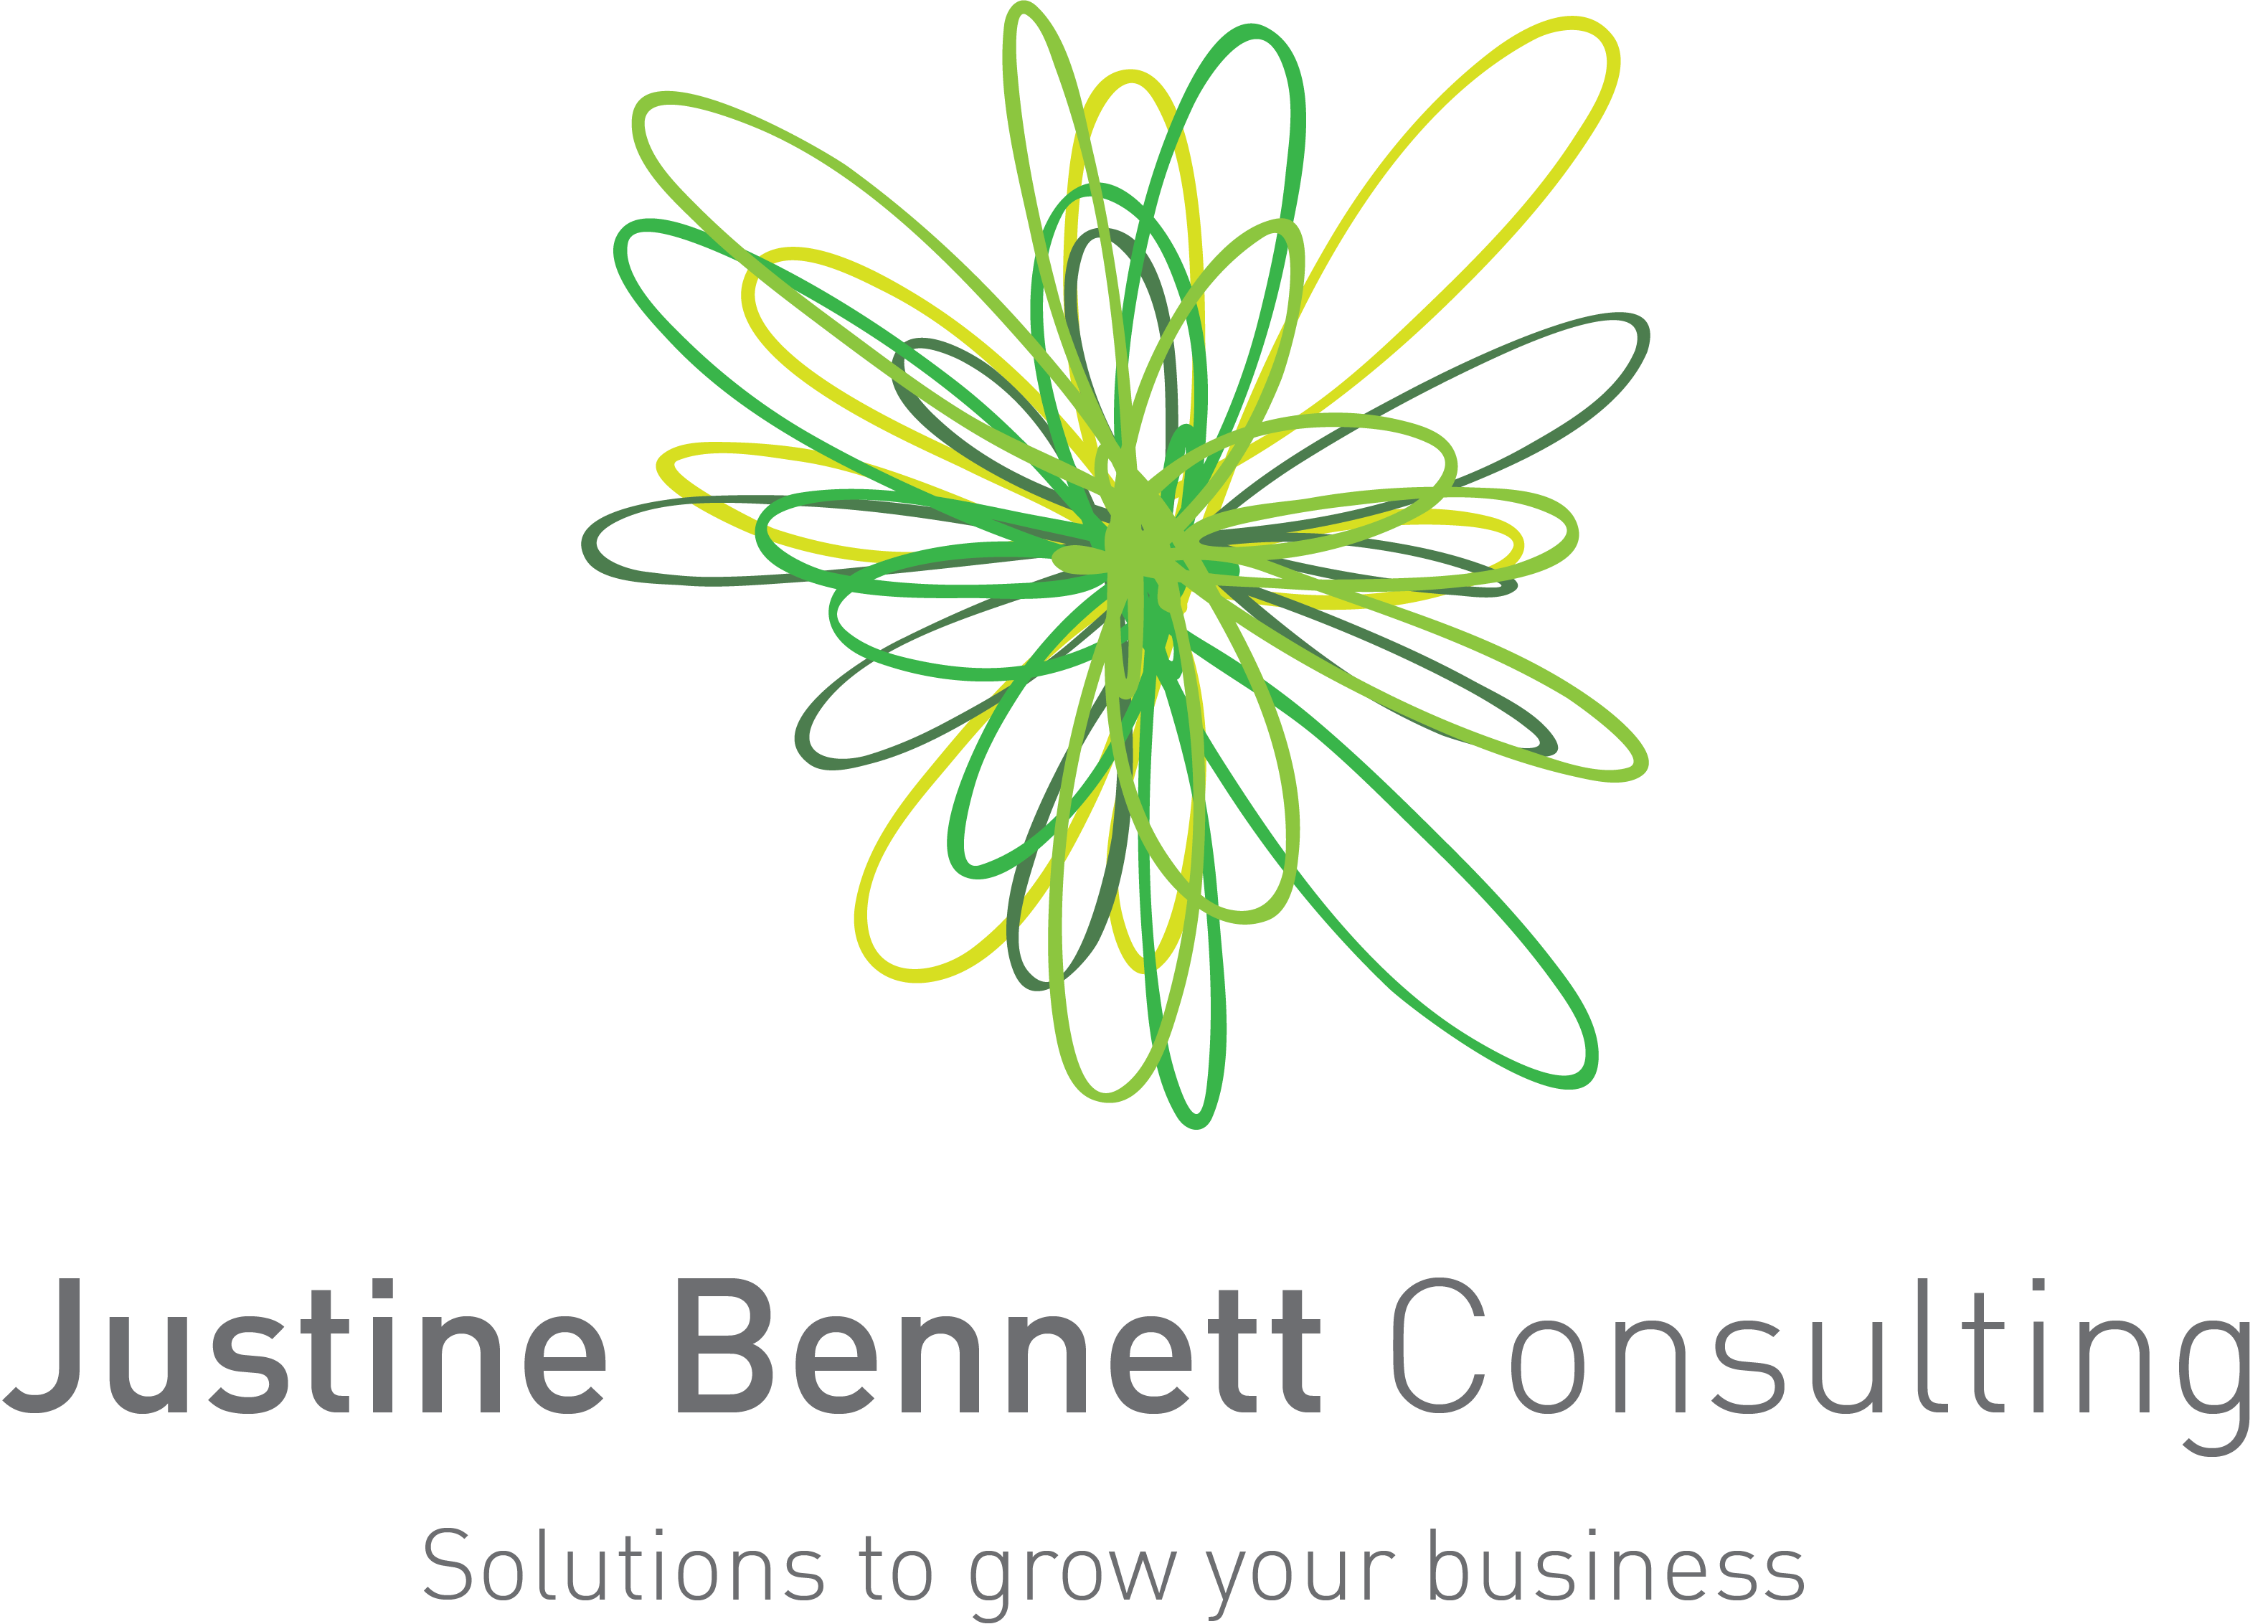 JB Consulting